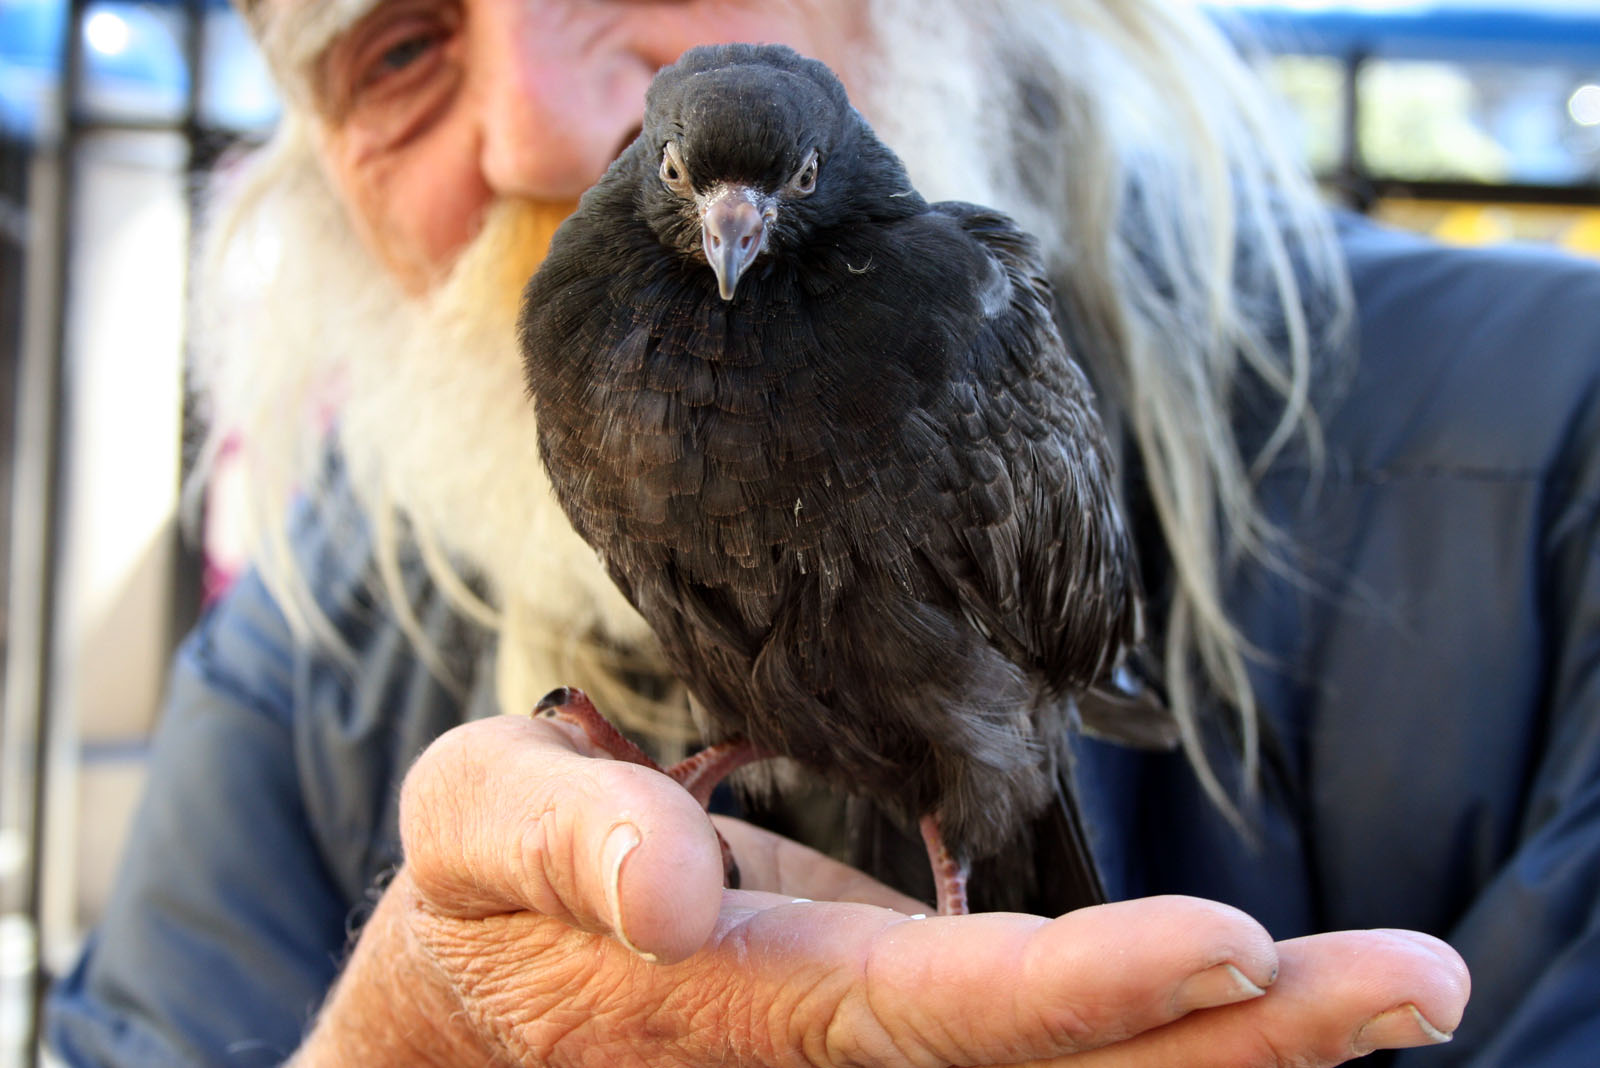 Street Science: The Pigeon – Winged Rat or Family Bird?